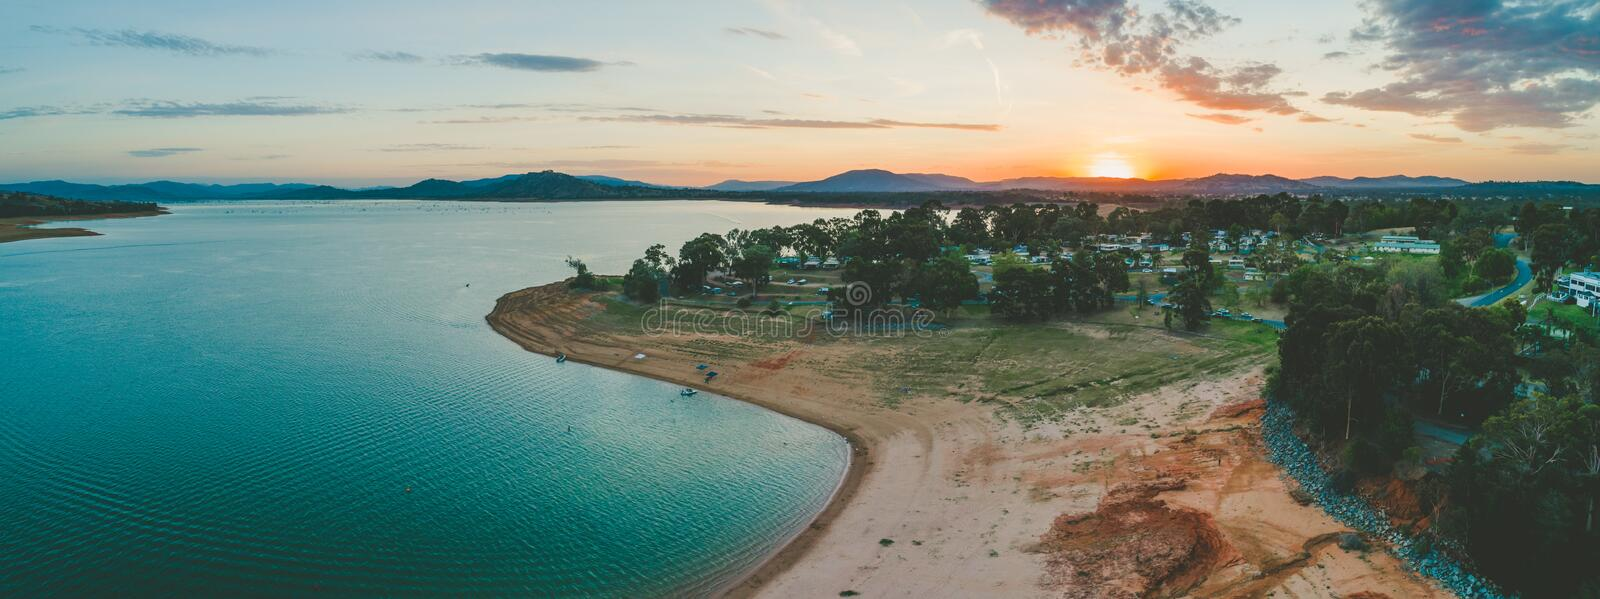 Sun disappearing behind mountains near Lake Hume Village. royalty free stock photos